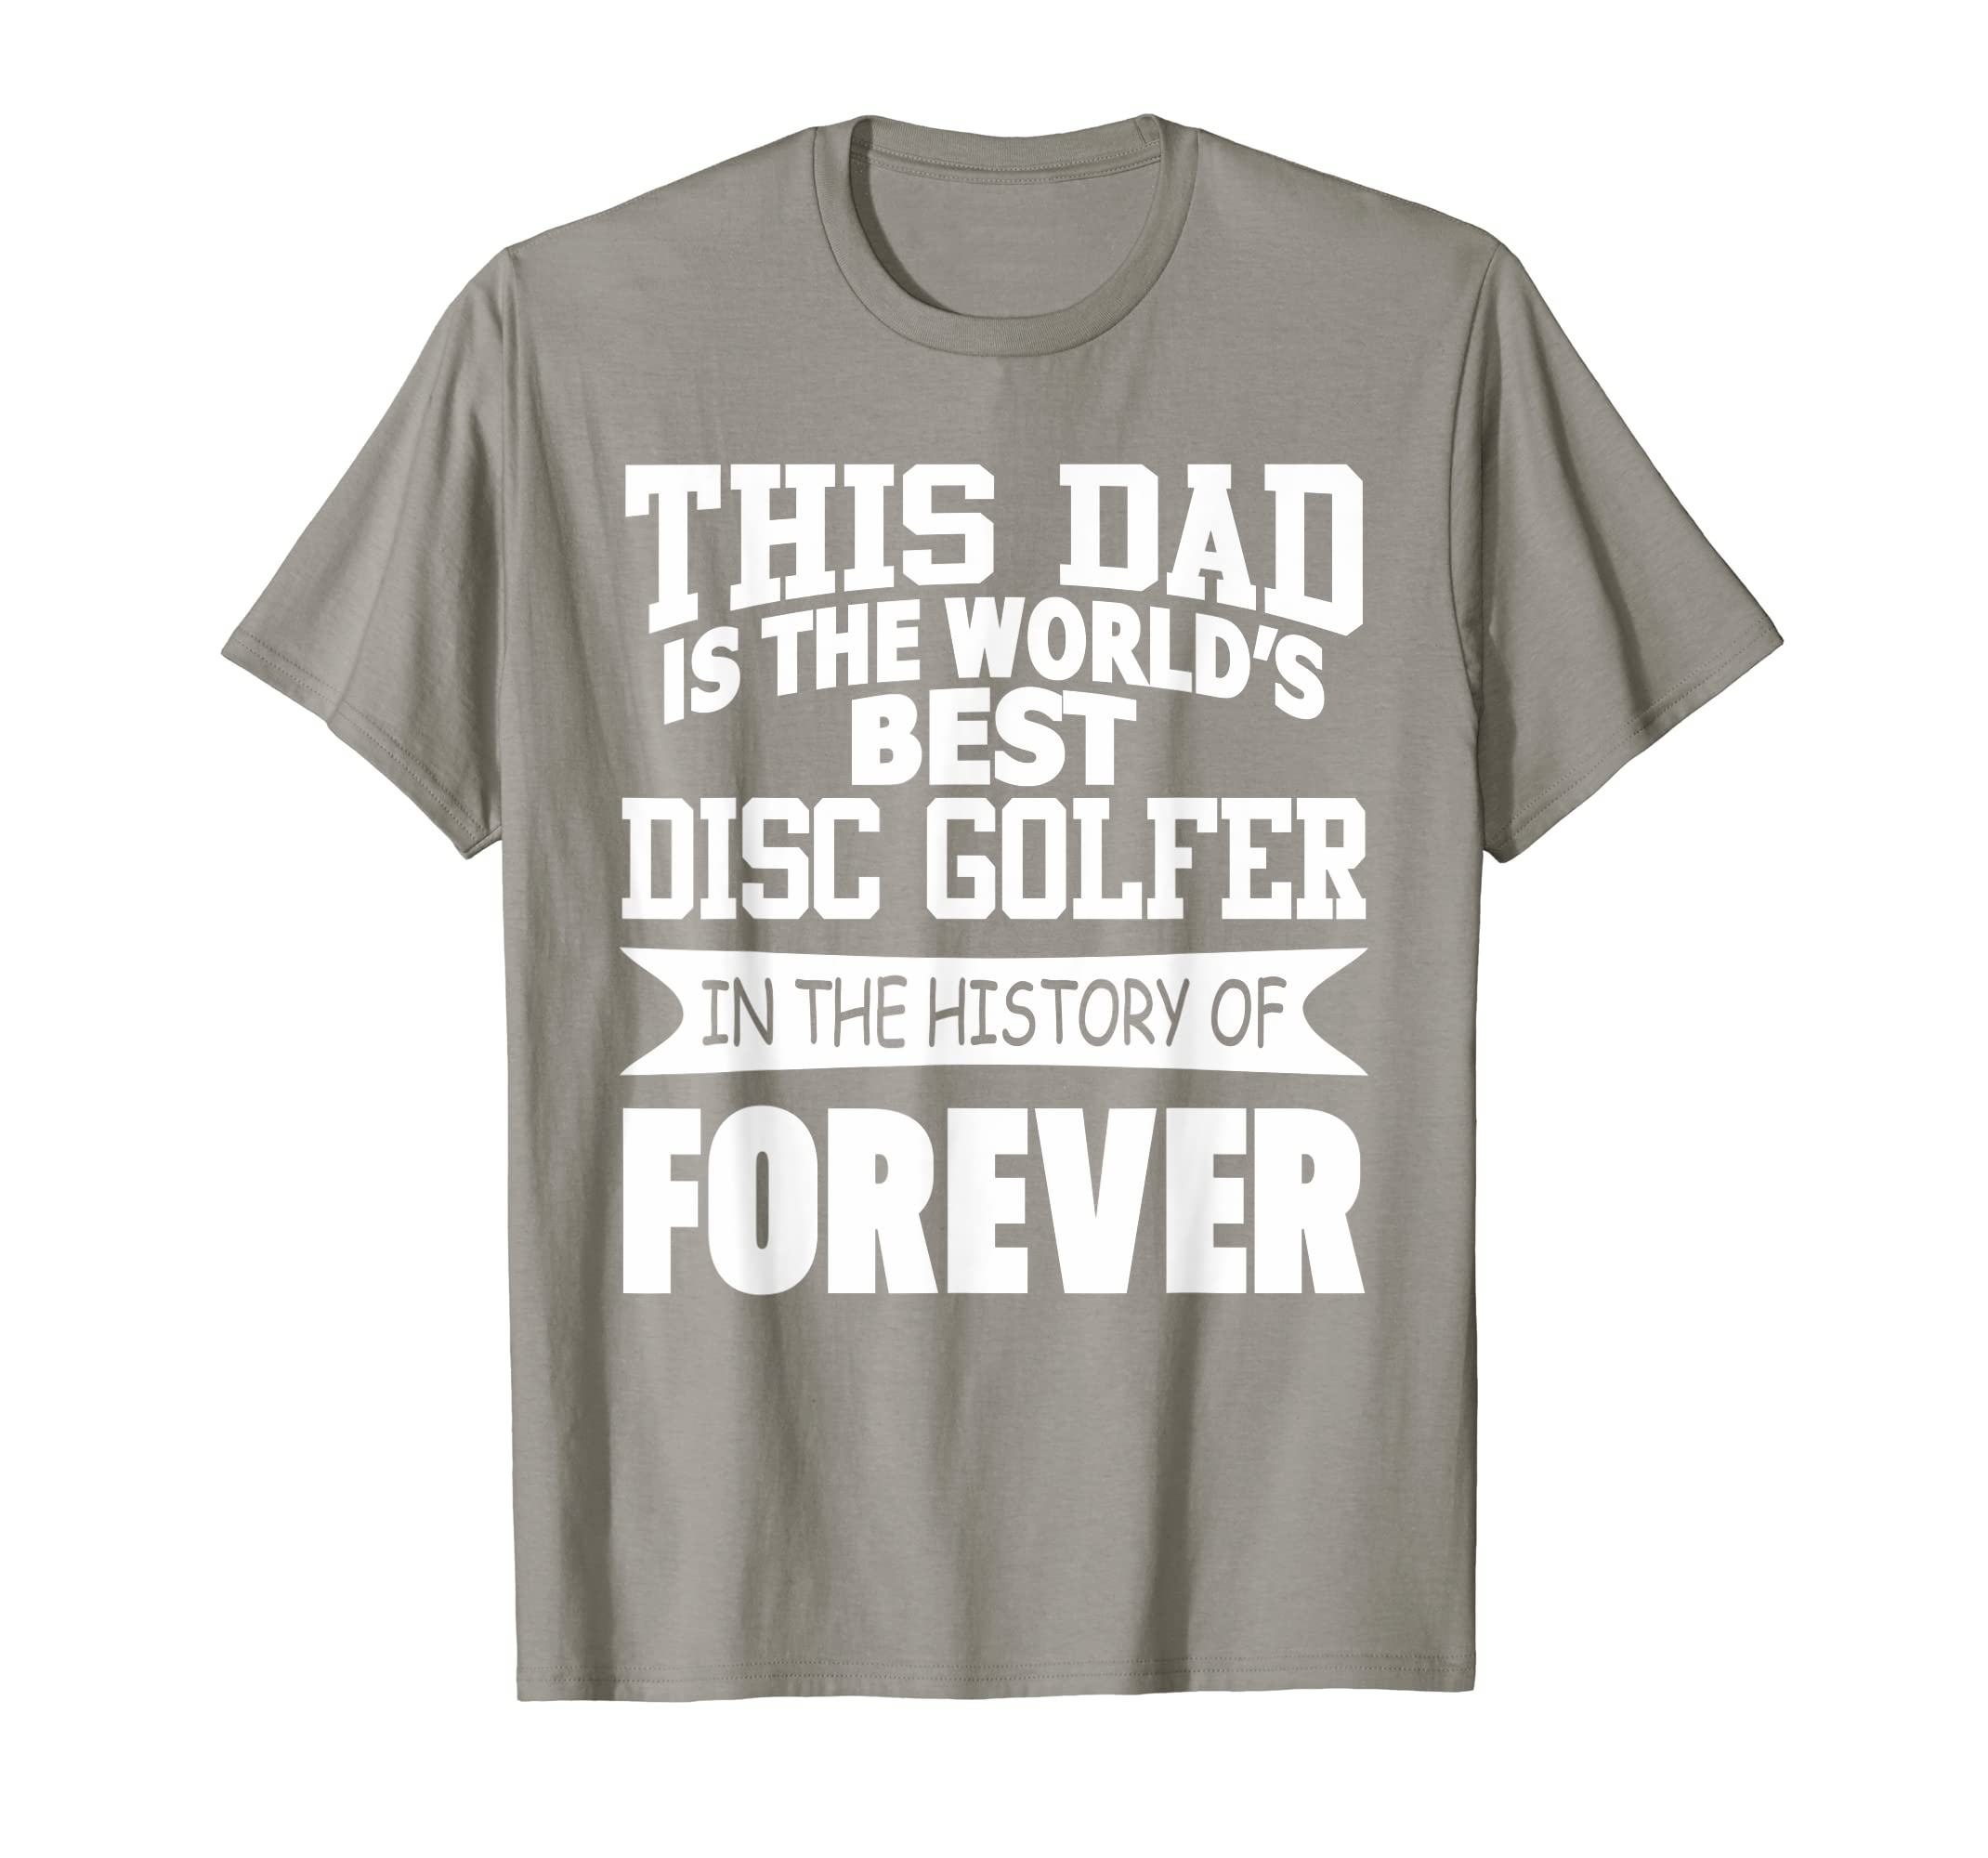 39a692e2 Amazon.com: Mens Disc Golf This Dad is The World's Best Disc Golfer Funny  Tee: Clothing